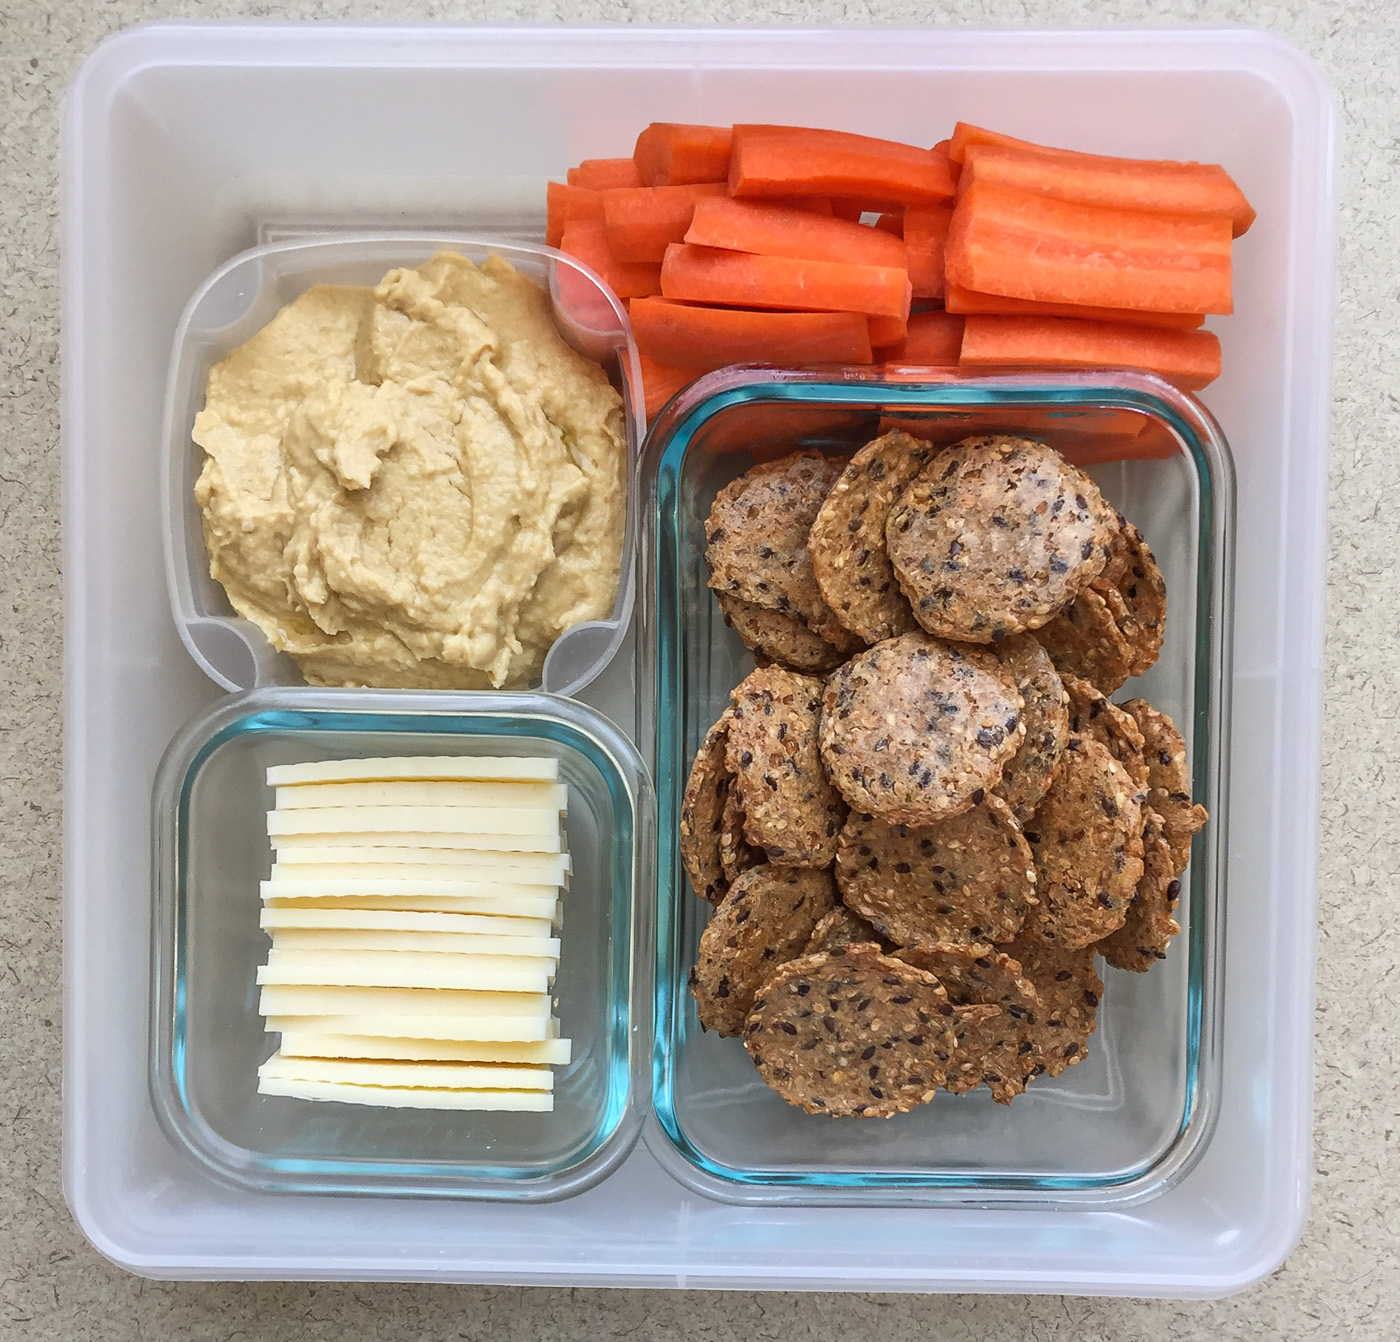 Healthy work snacks hummus, carrots, Mary's Gone Crackers, mozzarella cheese